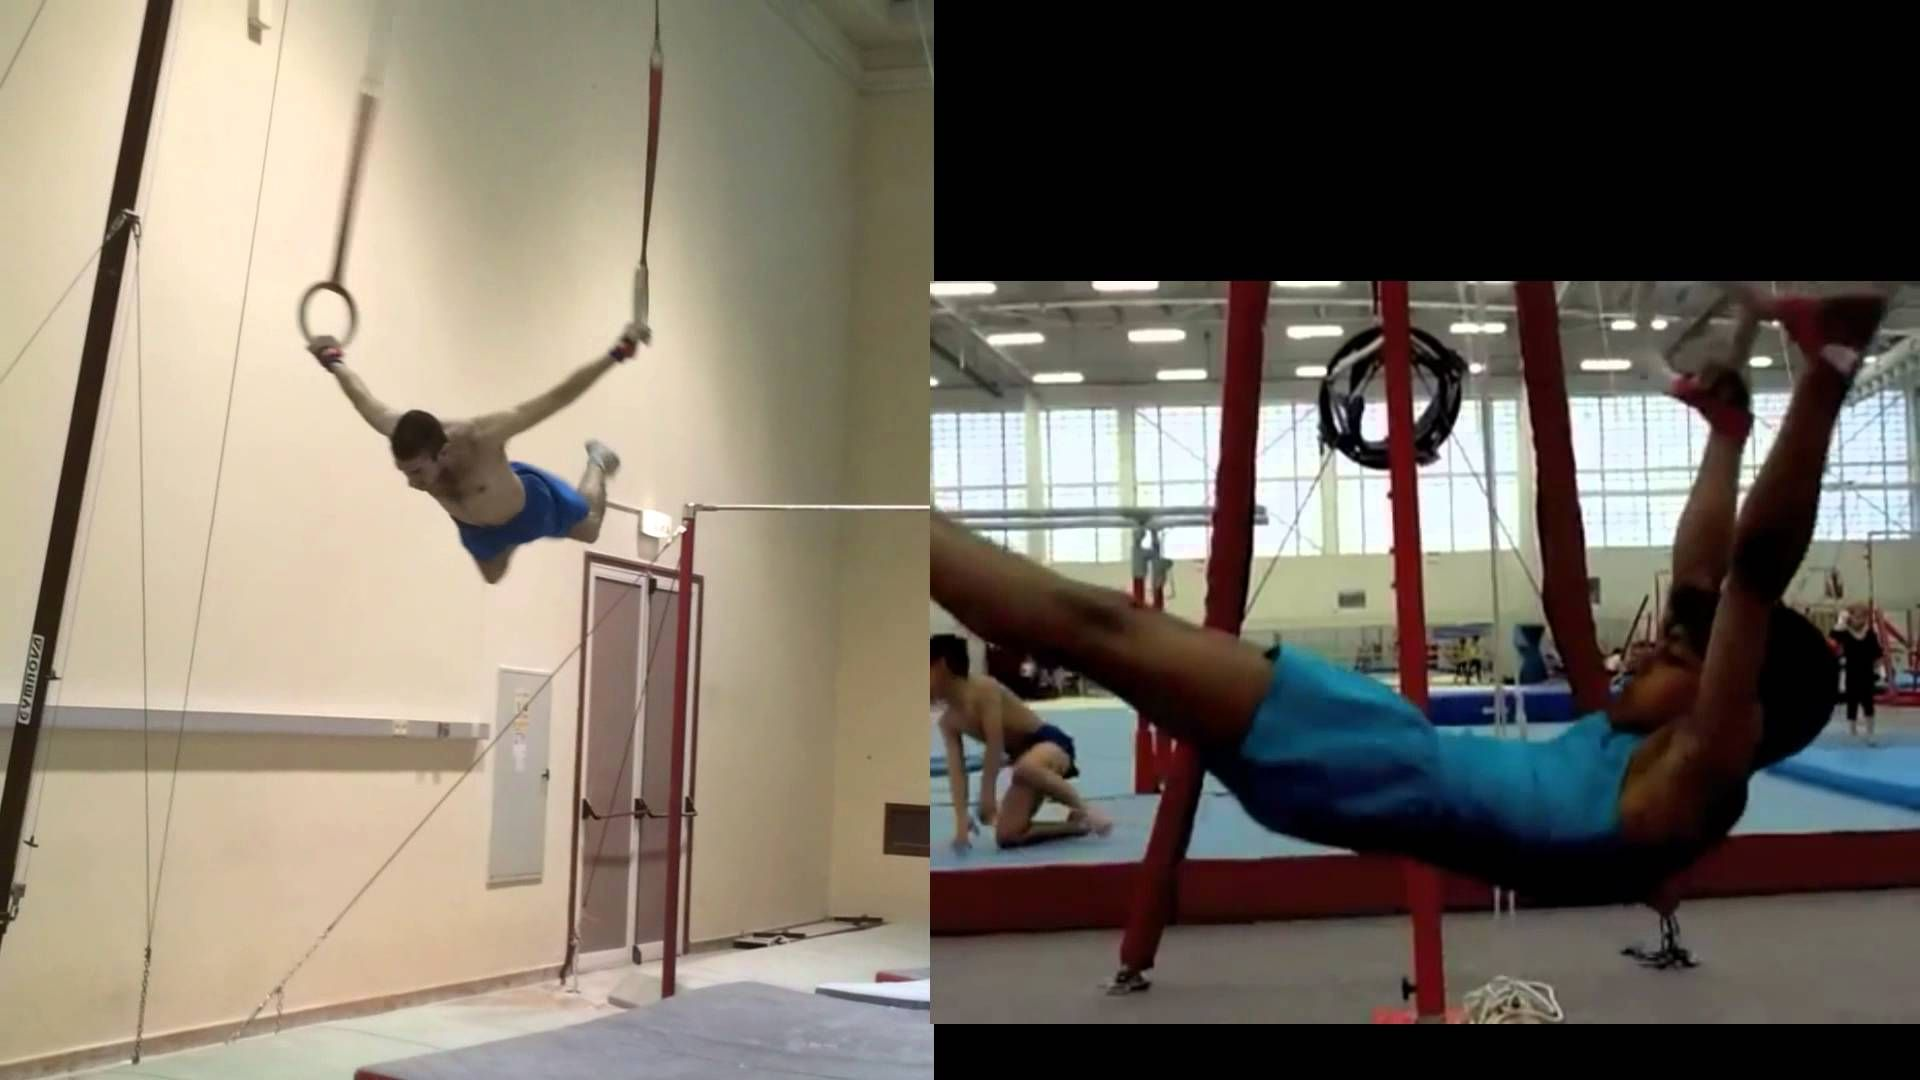 Ring Swings Progression With Comparision Gymnastics Fitness Chair Swing Calisthenics Workout